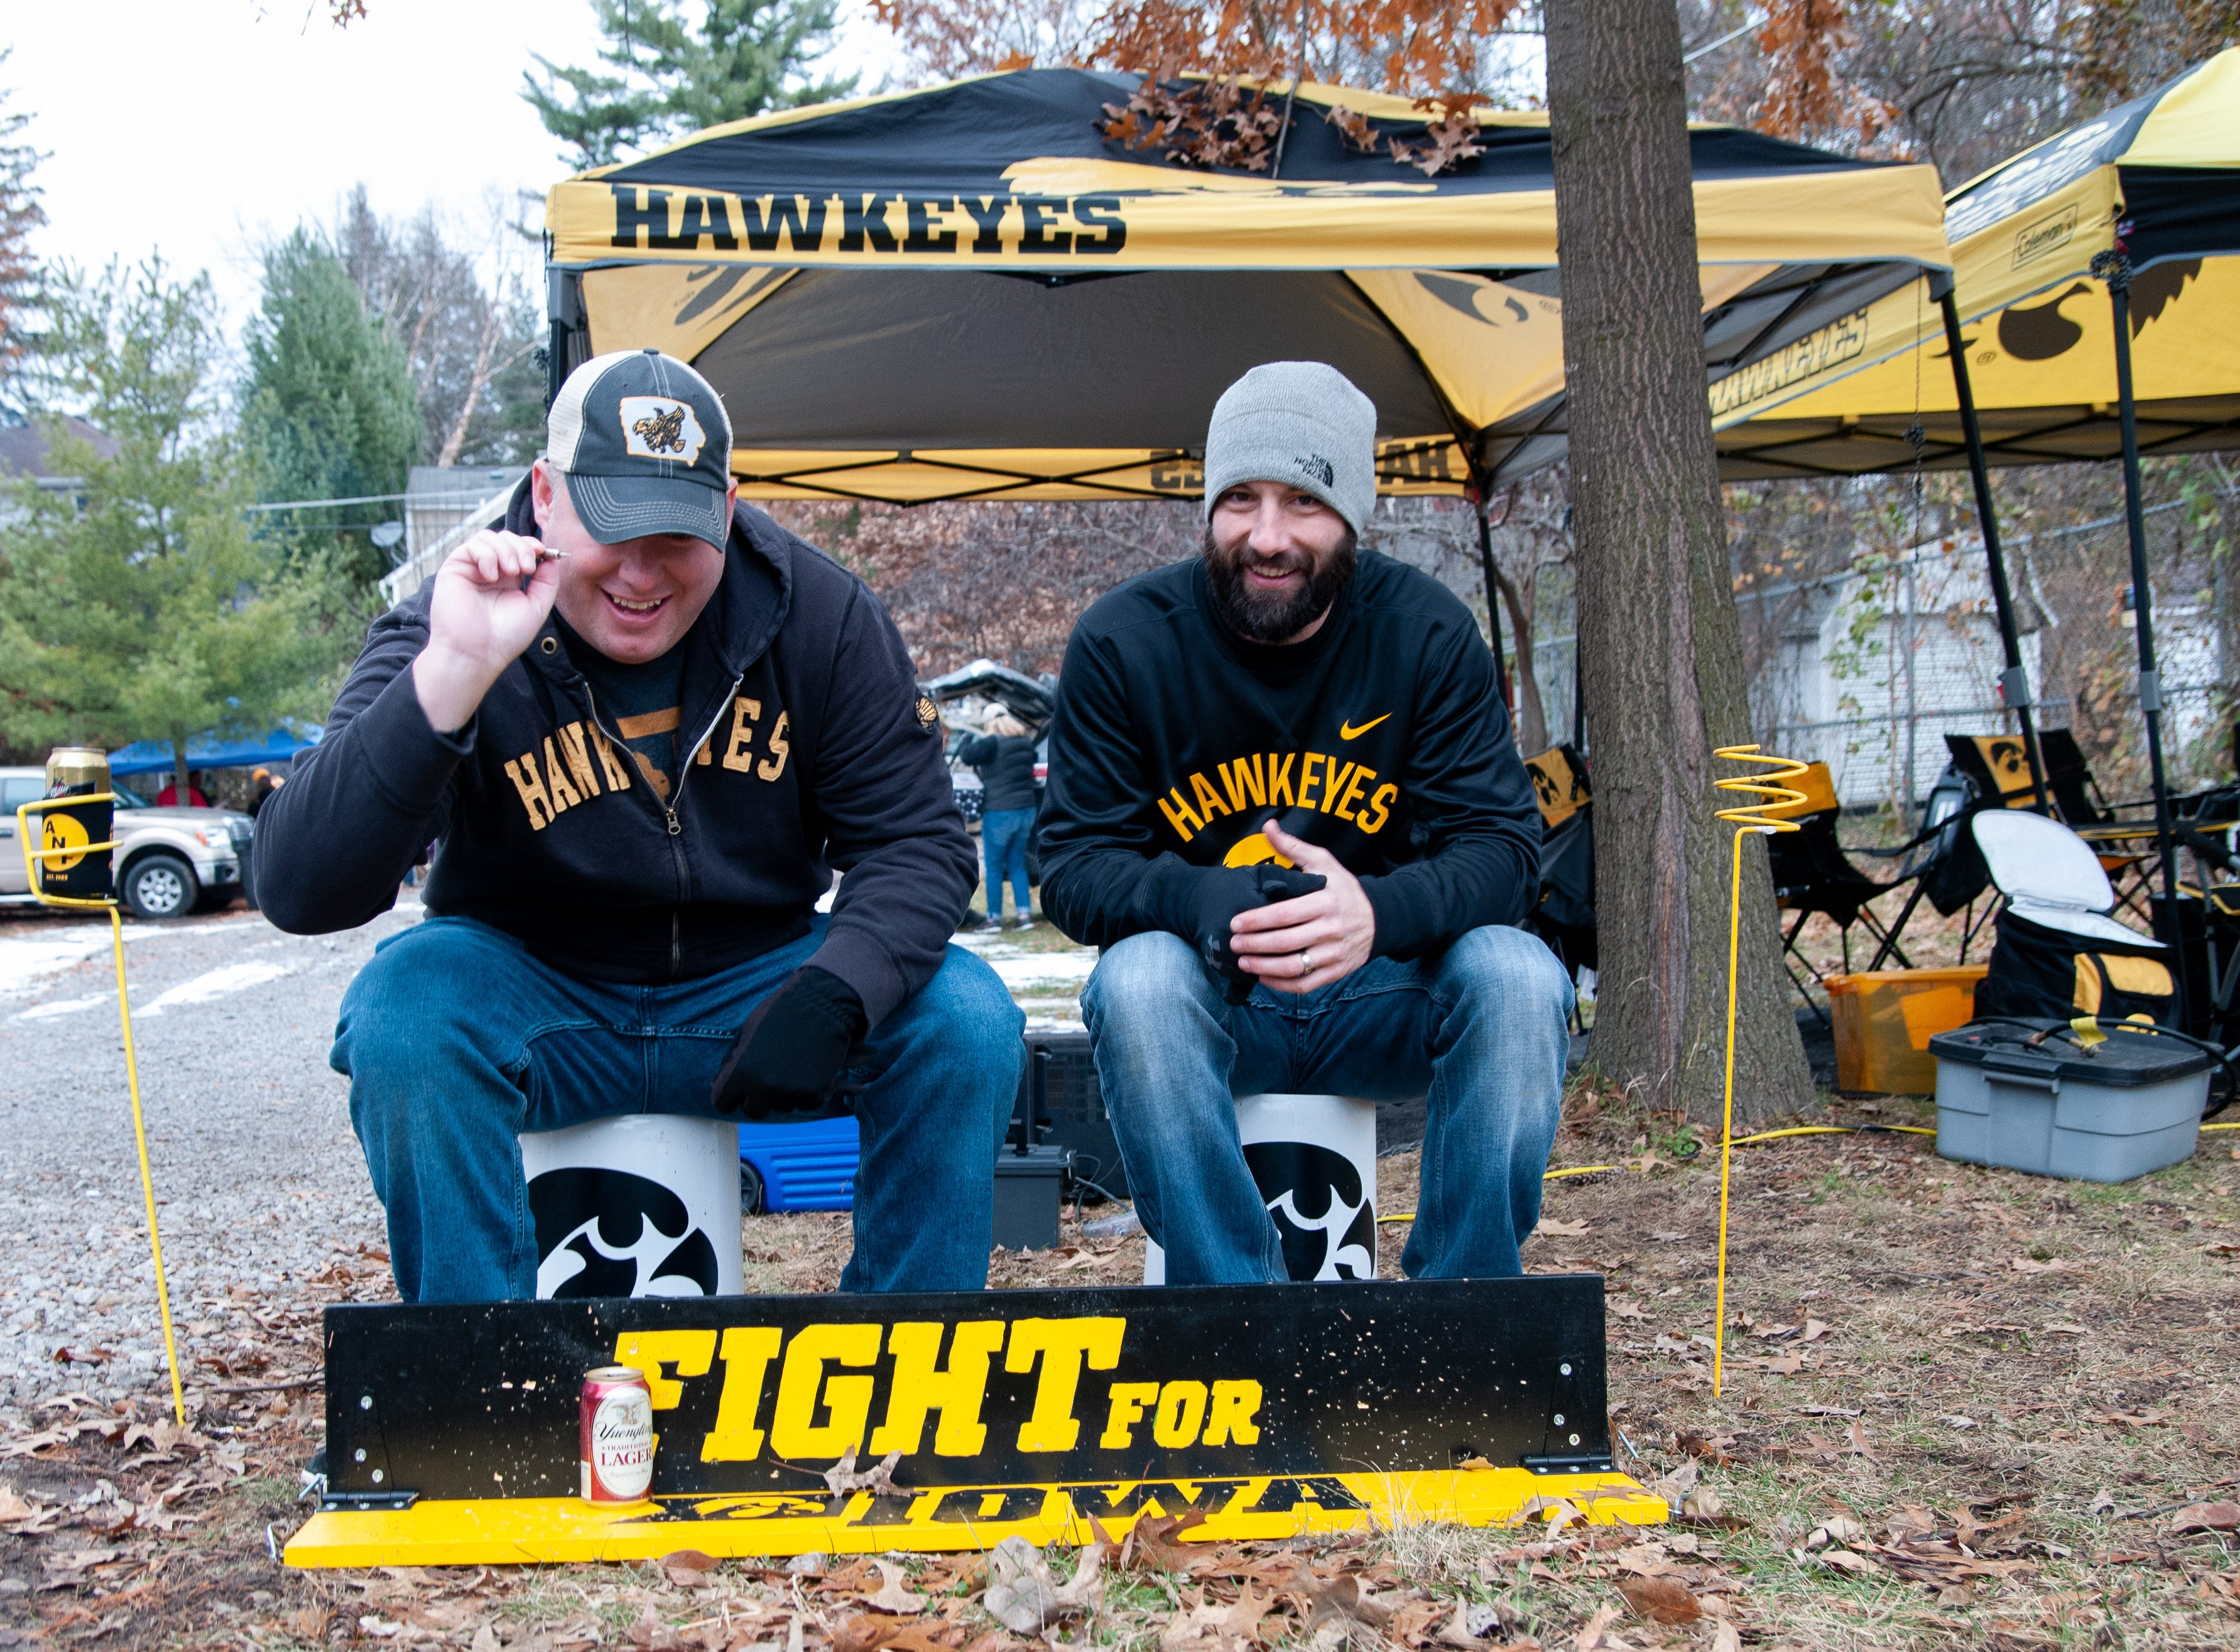 Eric Lyons, left, and Seith Monahan, of Des Moines, Friday, Nov. 23, 2018, while tailgating before the Iowa game against Nebraska in Iowa City.